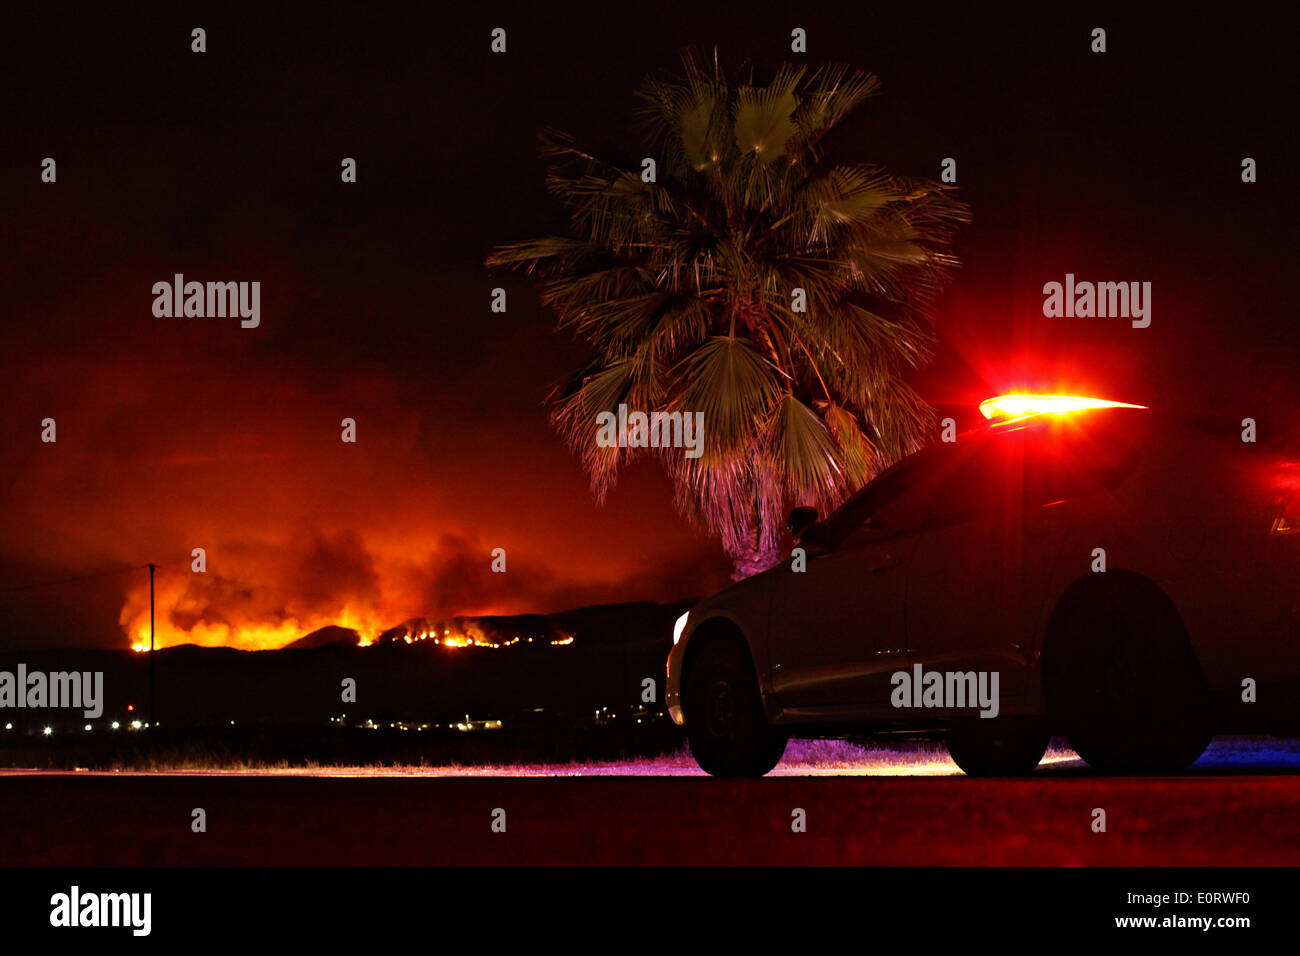 The Las Pulgas and Tomahawk wildfire burns at night in the foothills around the Marine Corps Air Station May 15, 2014 in Camp Pendleton, California. - Stock Image